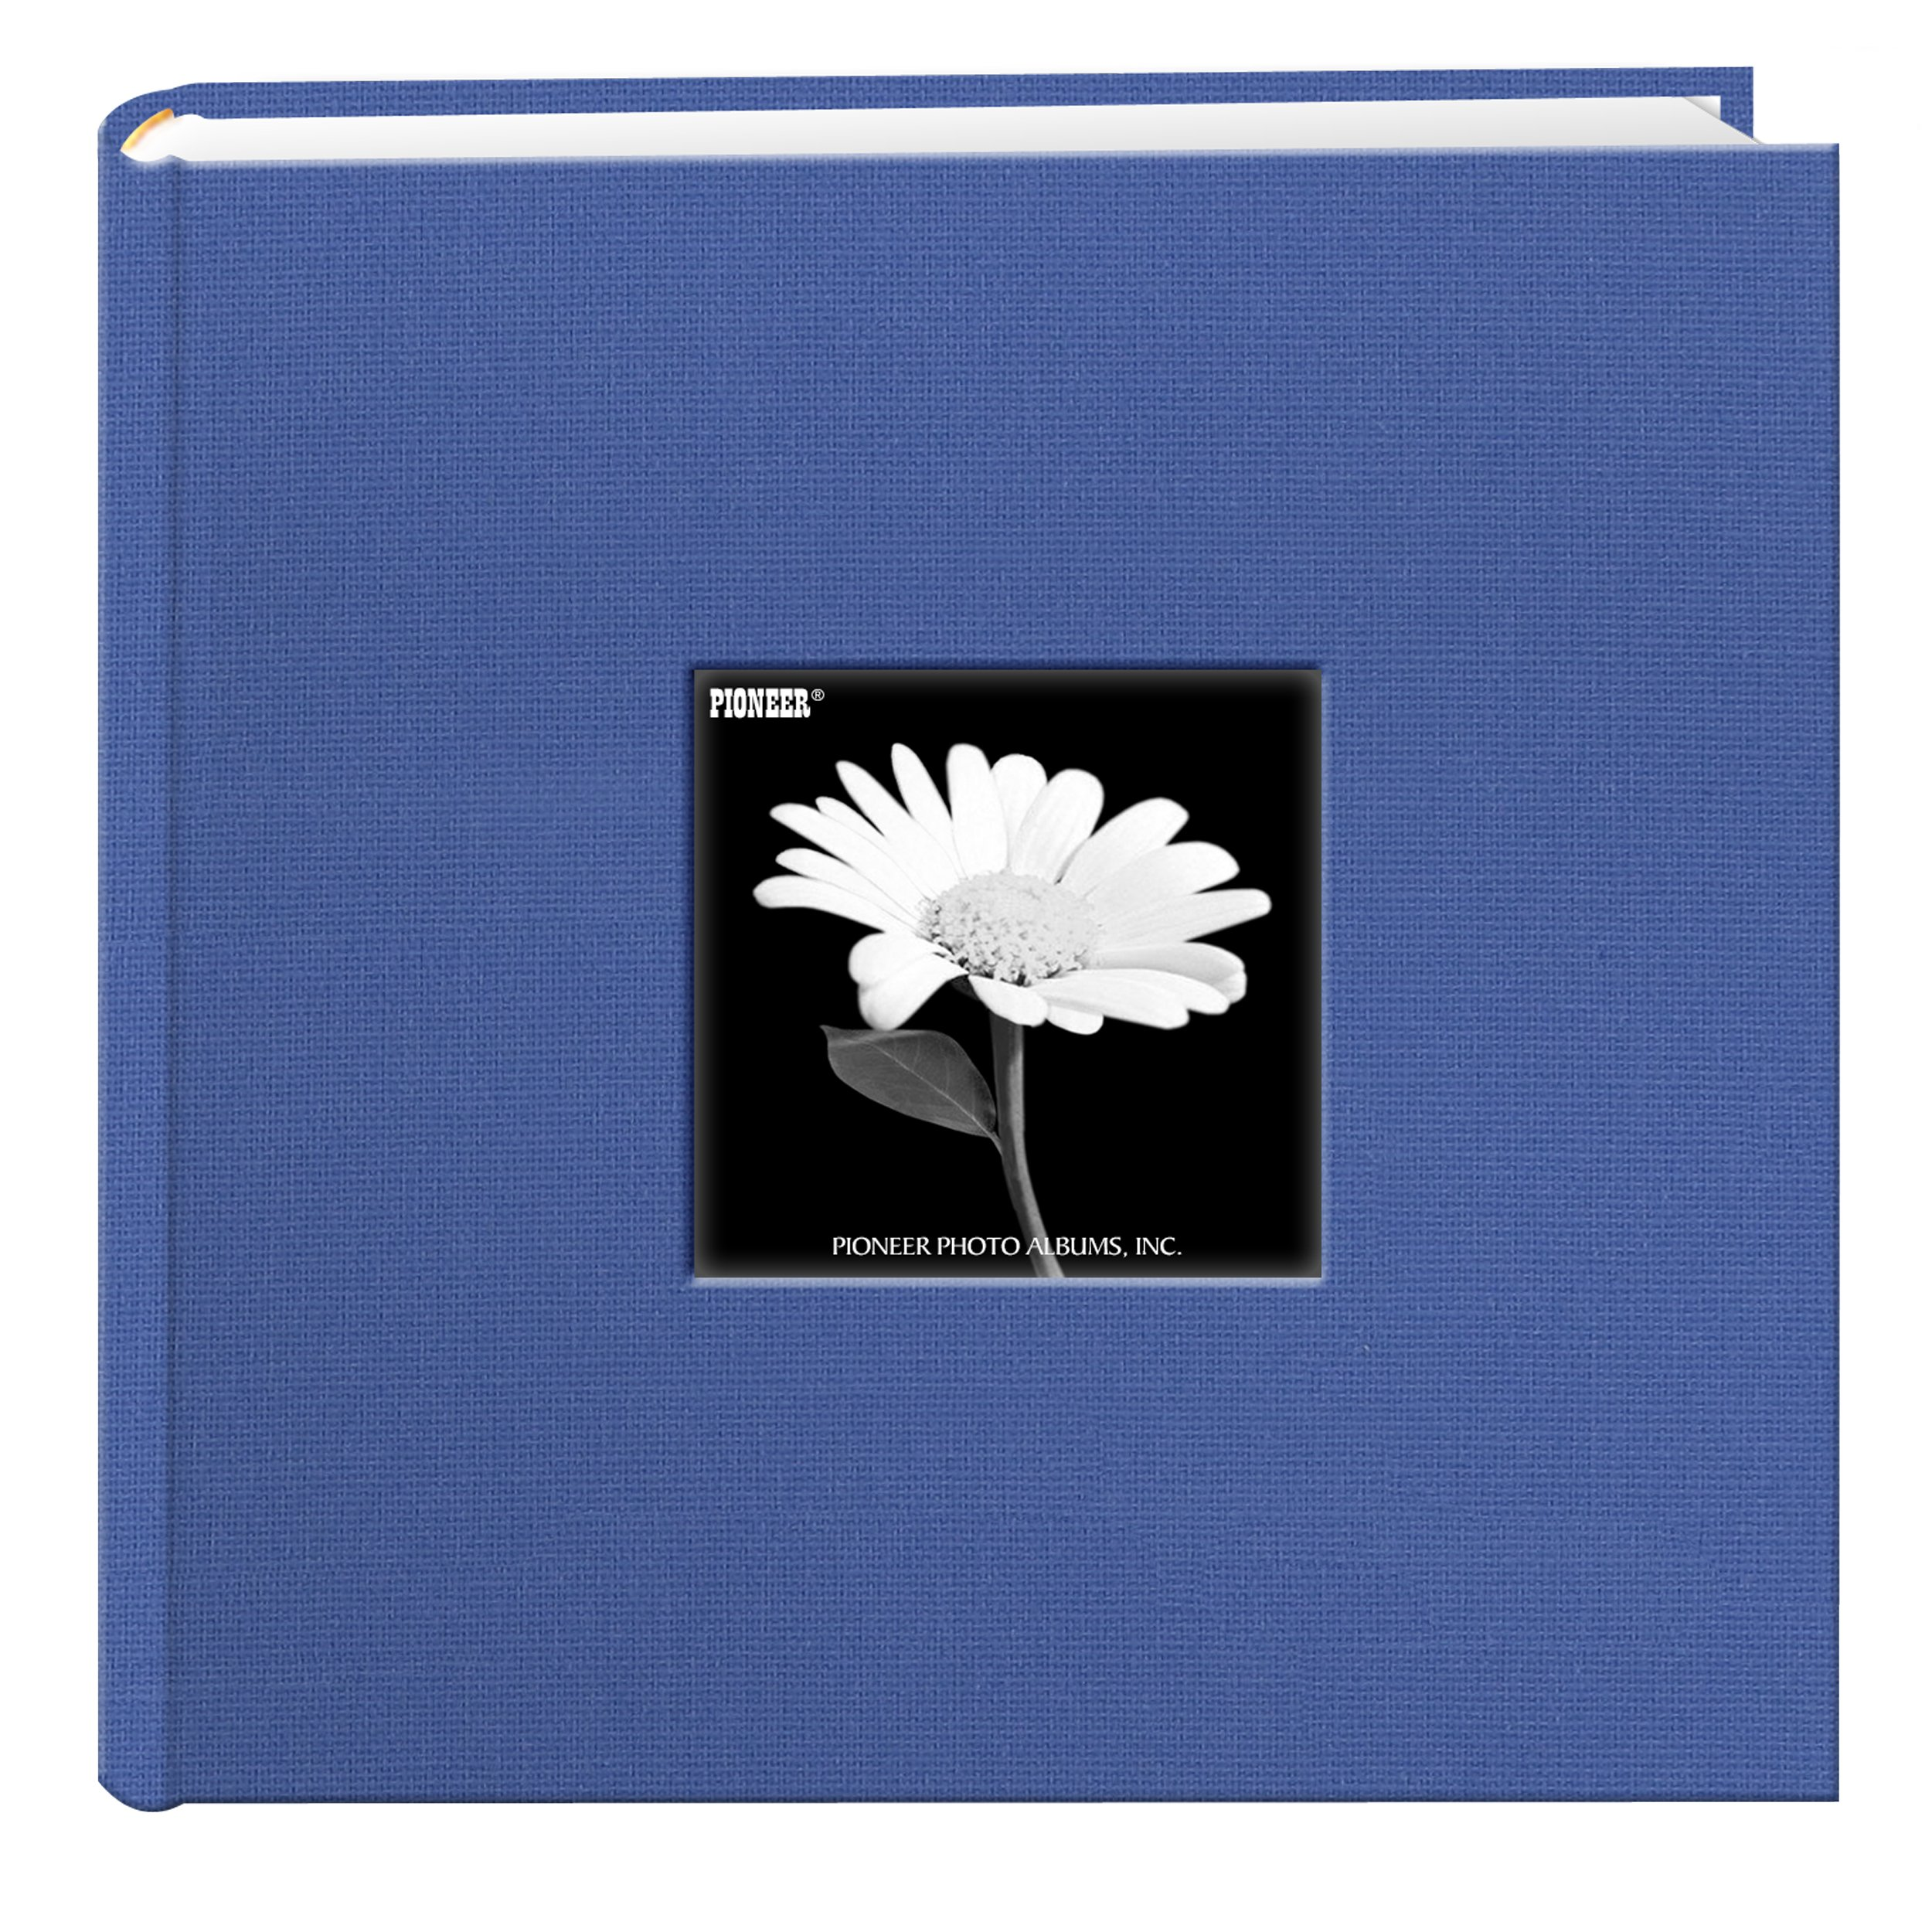 Fabric Frame Cover Photo Album 200 Pockets Hold 4x6 Photos, Sky Blue by Pioneer Photo Albums